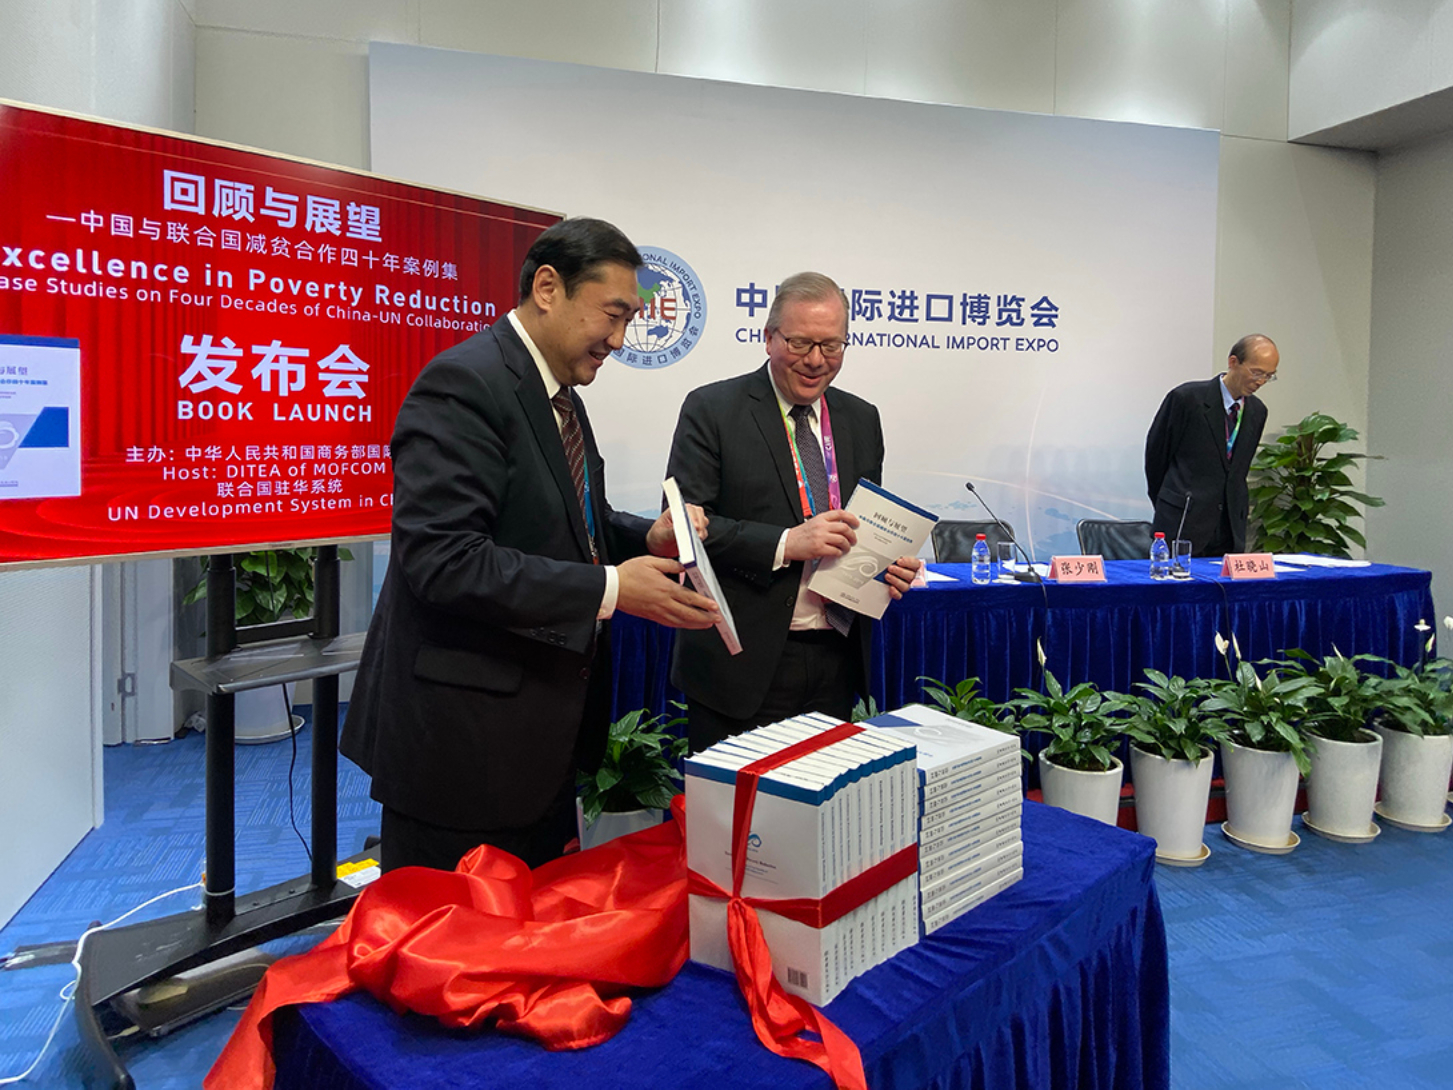 UN book launch at CIIE discusses China's progress in poverty reduction